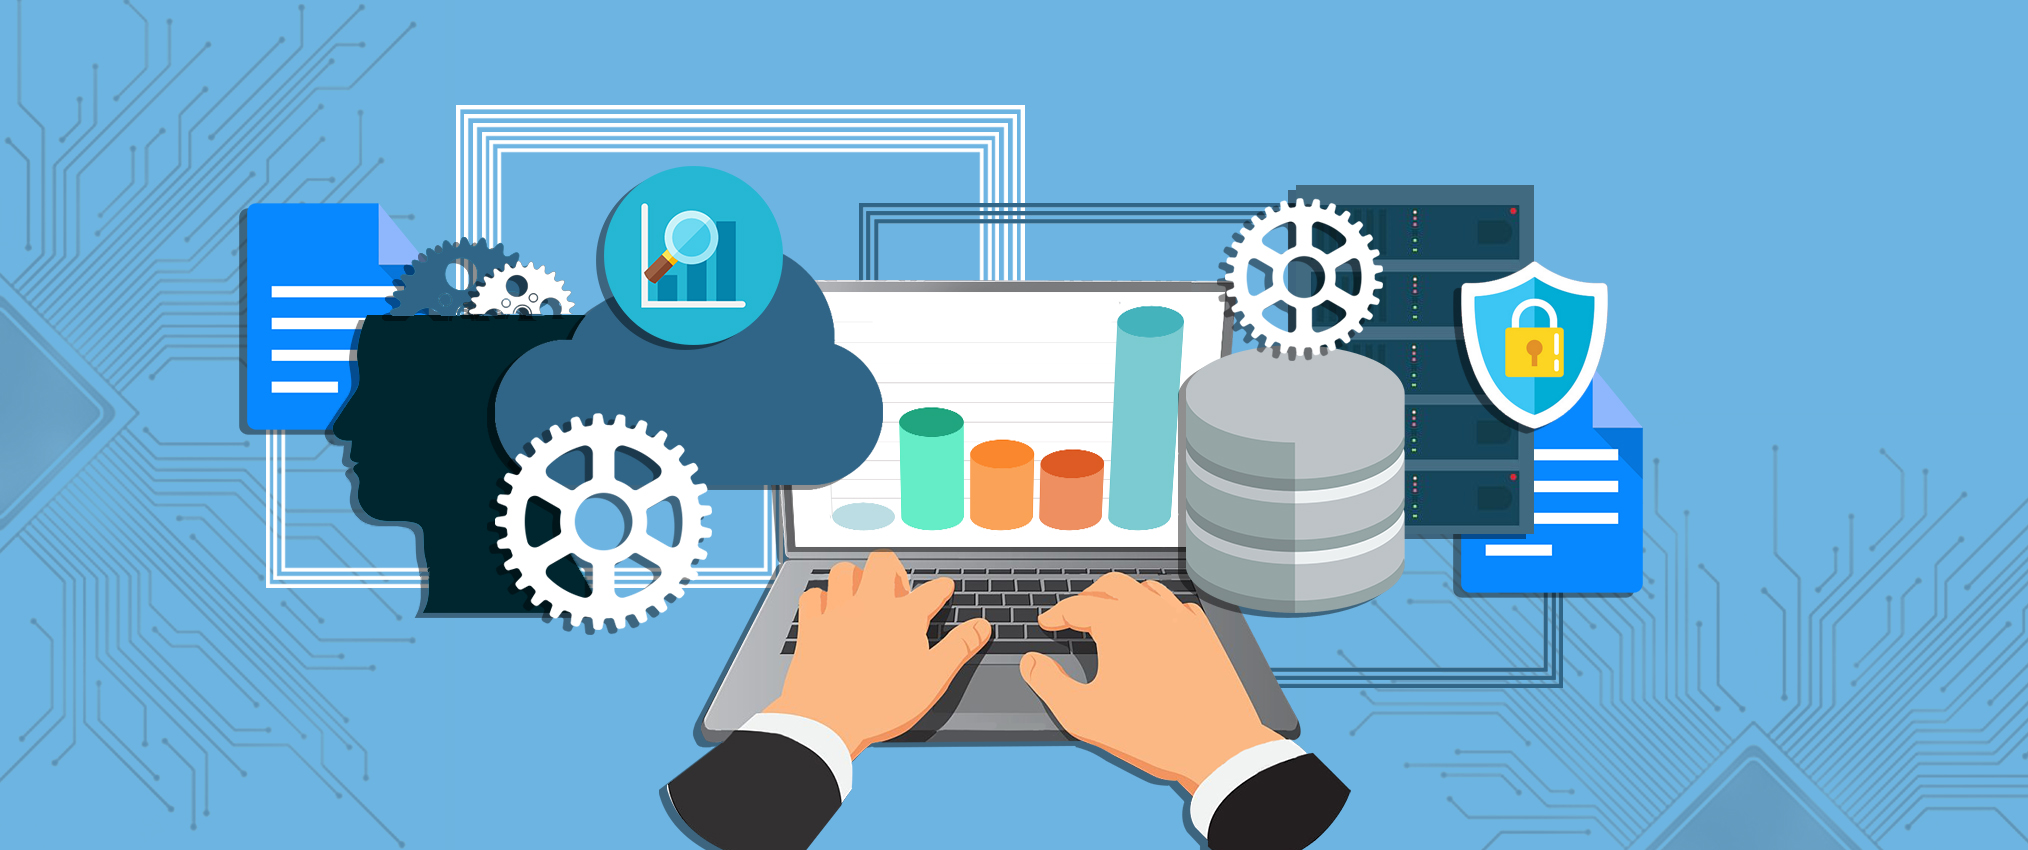 change your business with organized data processing services